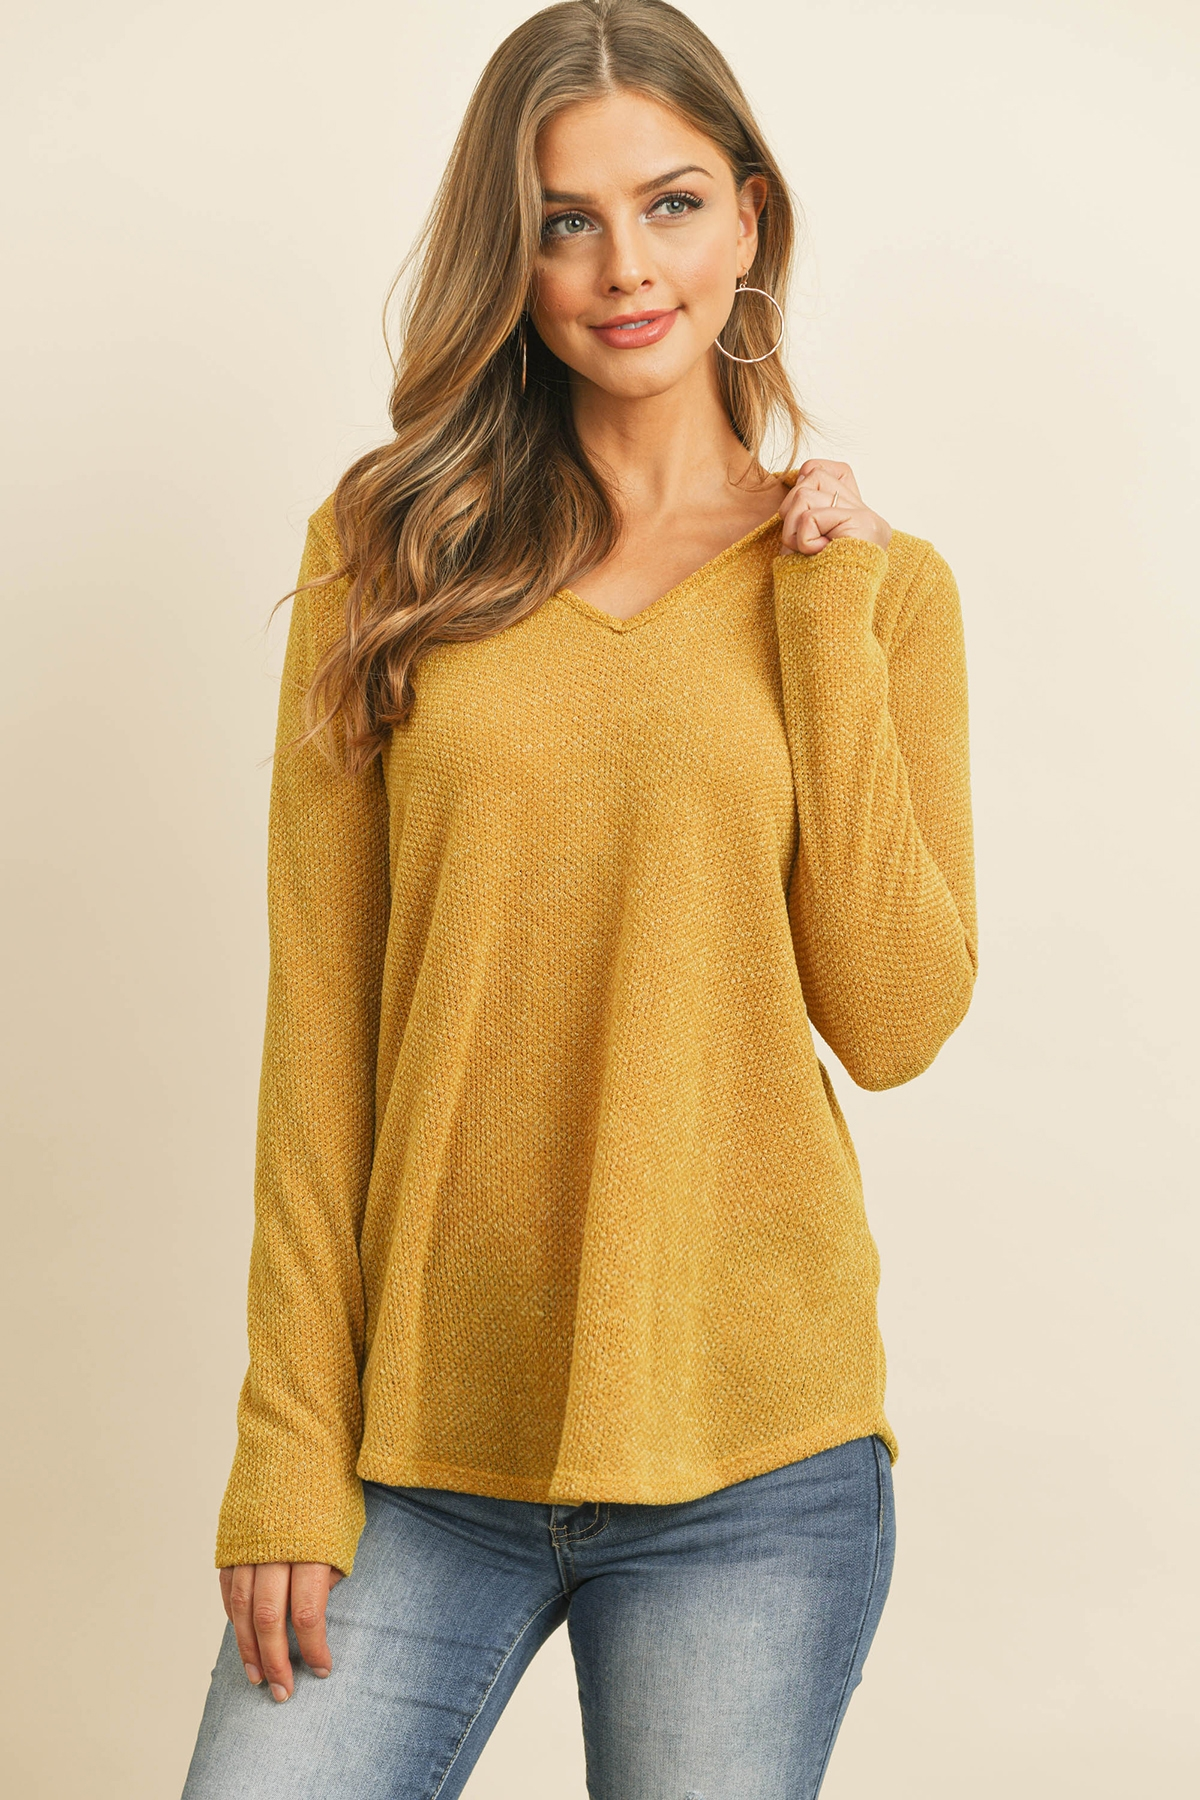 S10-19-1-RFT2319-DRAKE-MU MUSTARD CRISS CROSS NECK LONG SLEEVE HACCI TOP 1-2-2-2